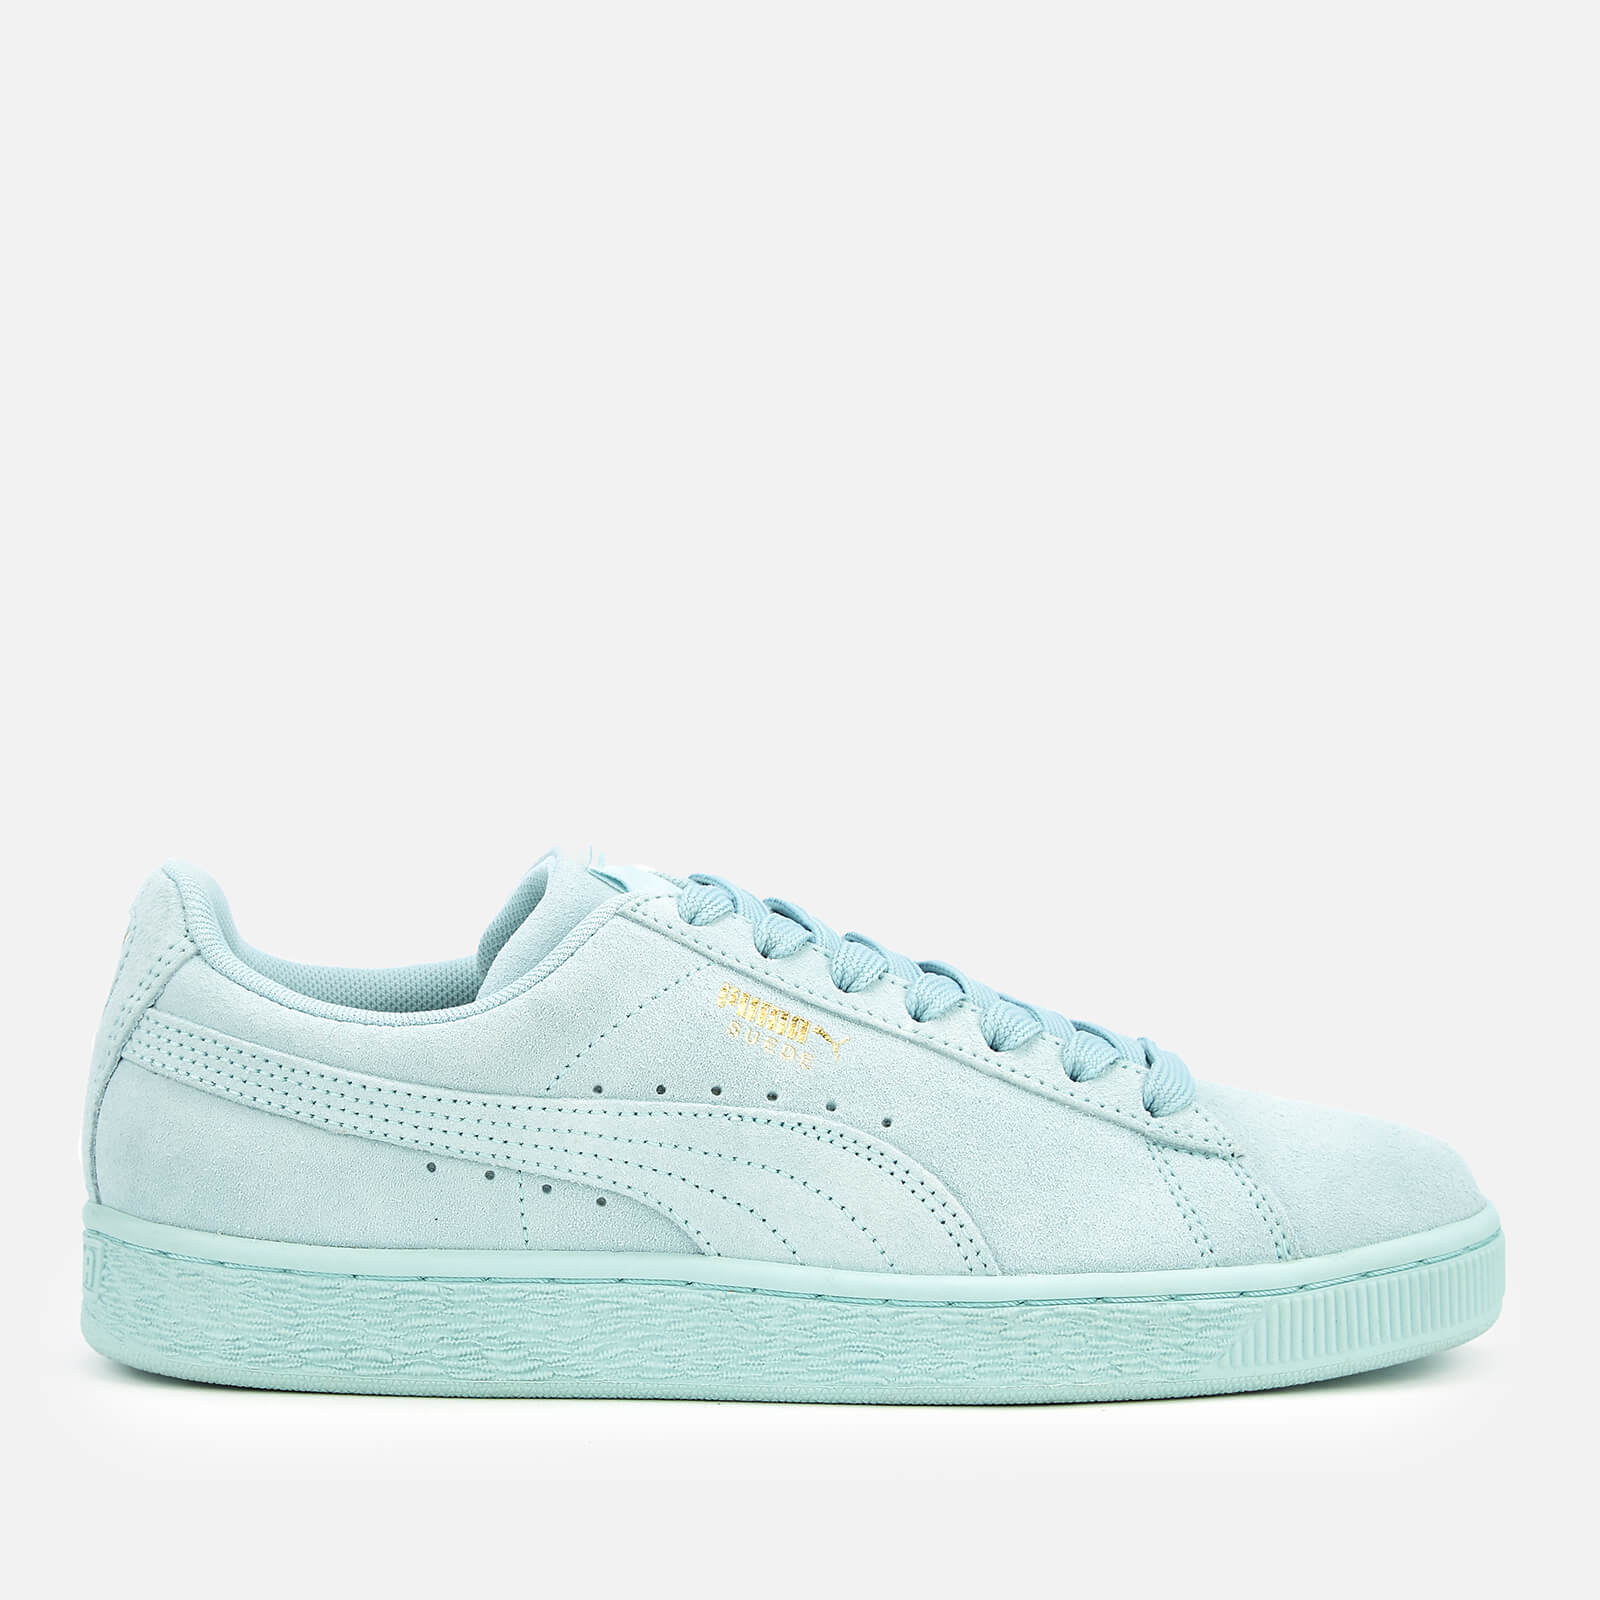 wholesale dealer 90ec7 59c0b Puma Suede Classic Trainers - Light Sky/Puma Team Gold